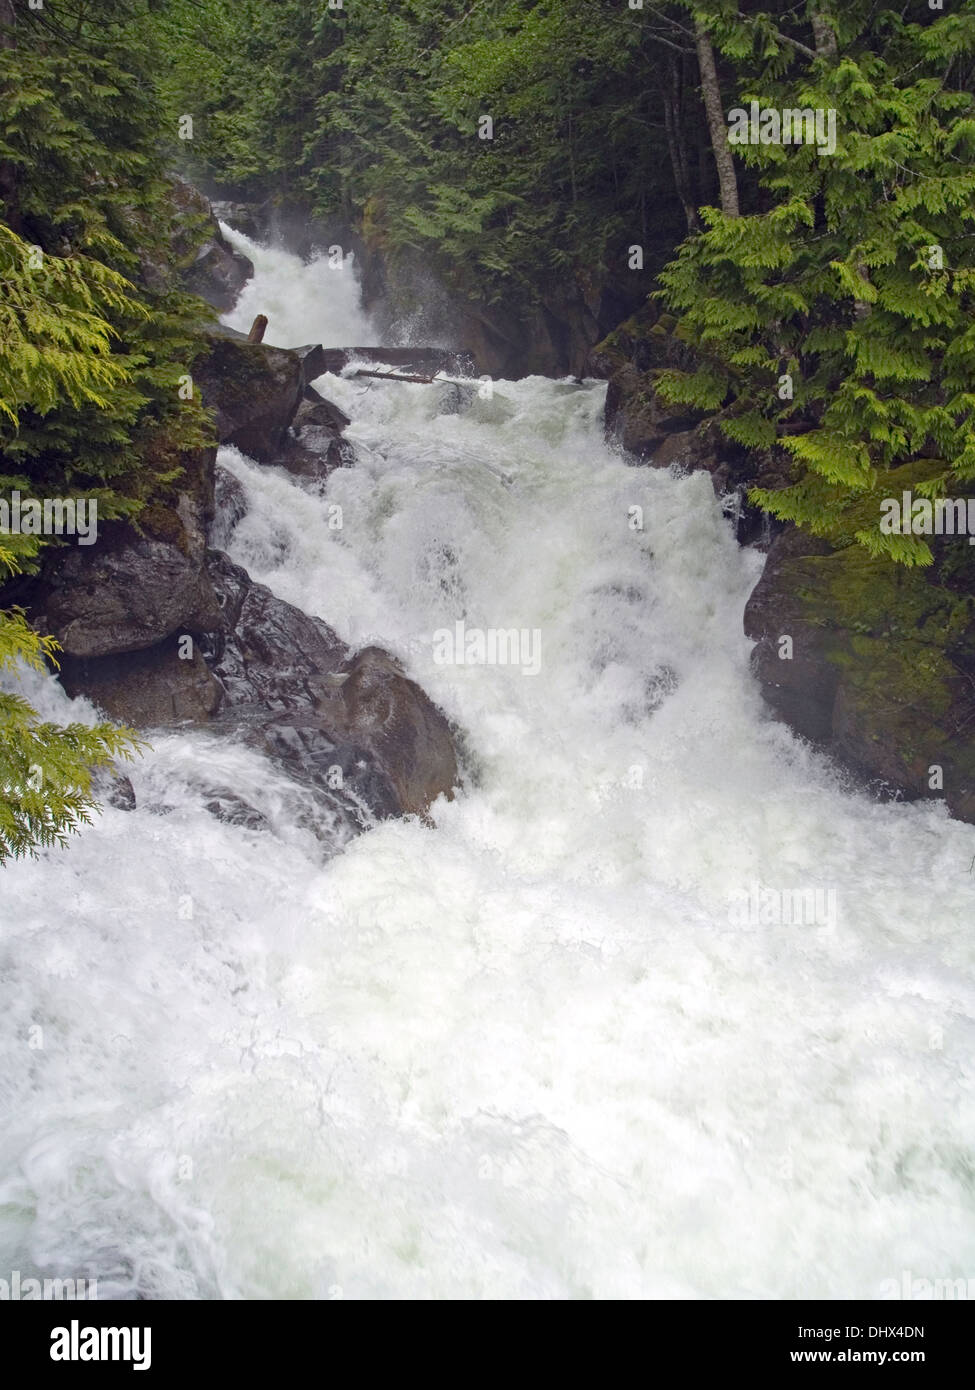 The raging Deception Falls on the Cascade Loop,Washington State - Stock Image